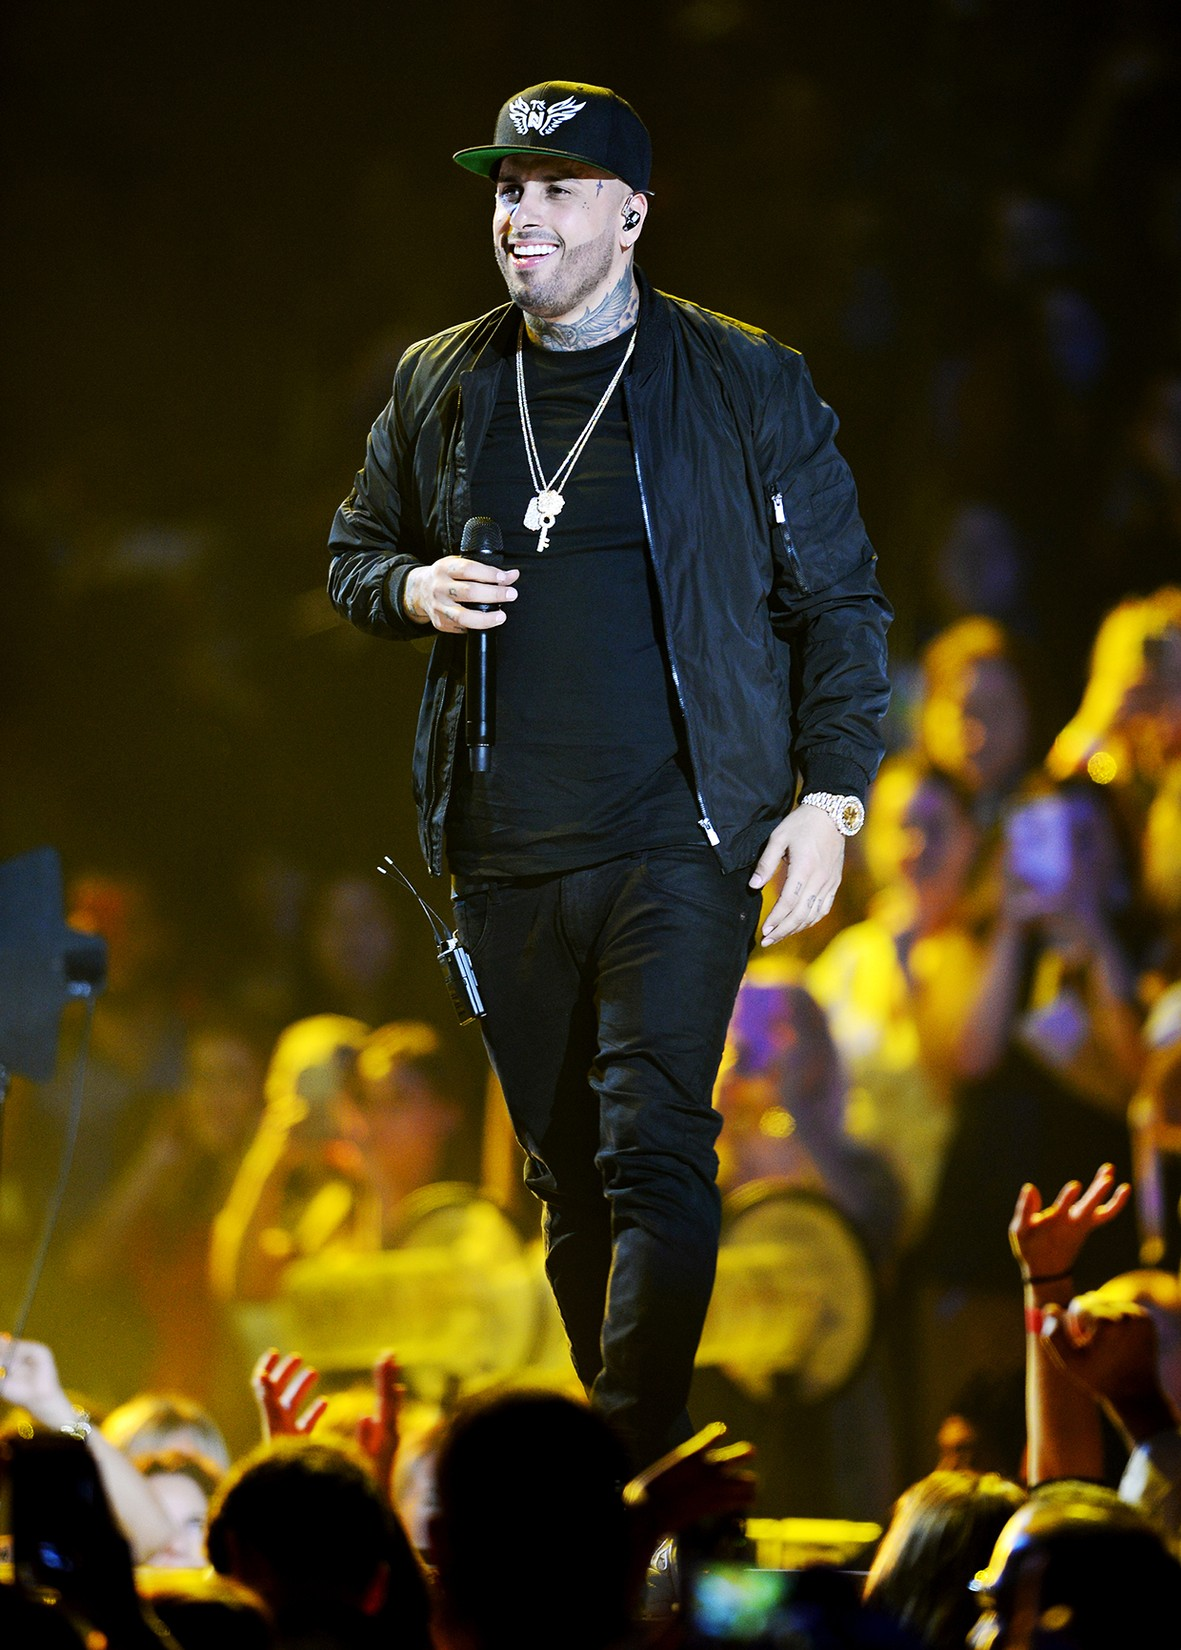 Nicky Jam performs on stage at iHeartRadio Fiesta Latina at American Airlines Arena on Nov. 5, 2016 in Miami.